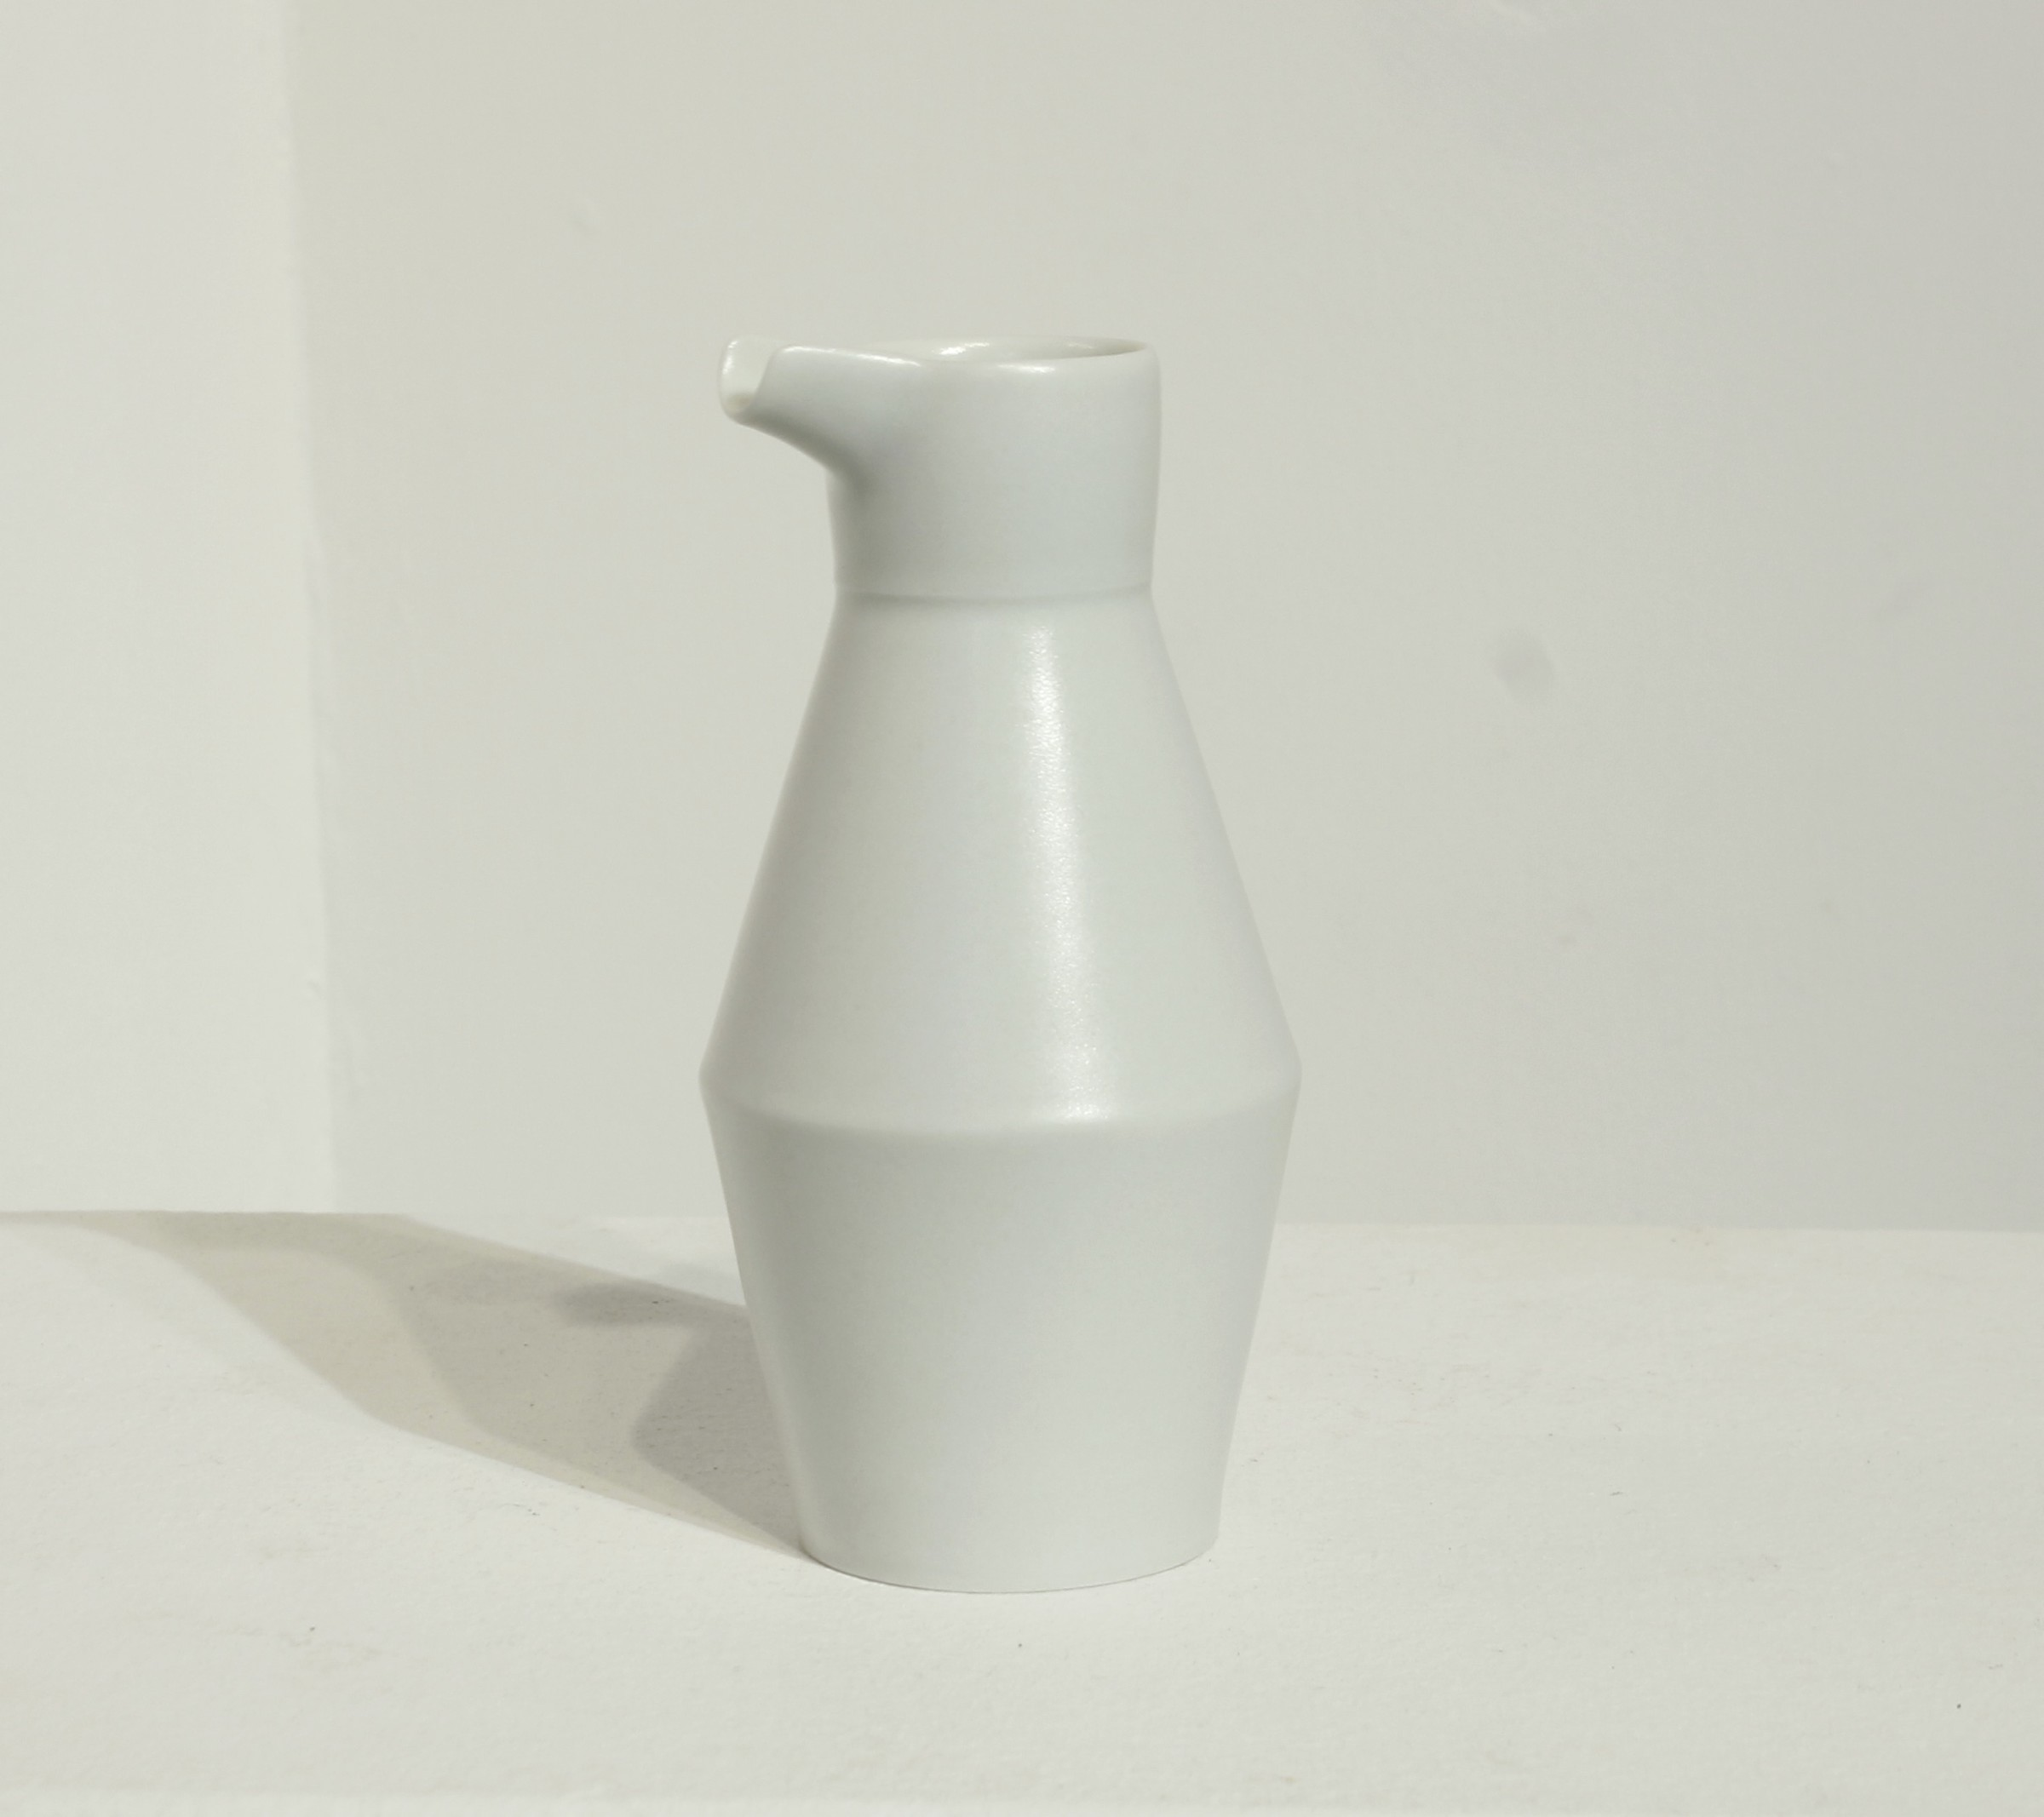 "<span class=""link fancybox-details-link""><a href=""/artists/33-sun-kim/works/5102-sun-kim-milk-jug-2017/"">View Detail Page</a></span><div class=""artist""><strong>Sun Kim</strong></div> <div class=""title""><em>Milk Jug </em>, 2017</div> <div class=""signed_and_dated"">stamped by the artist</div> <div class=""medium"">porcelain</div> <div class=""dimensions"">h. 13 x w. 6.5 cm </div>"